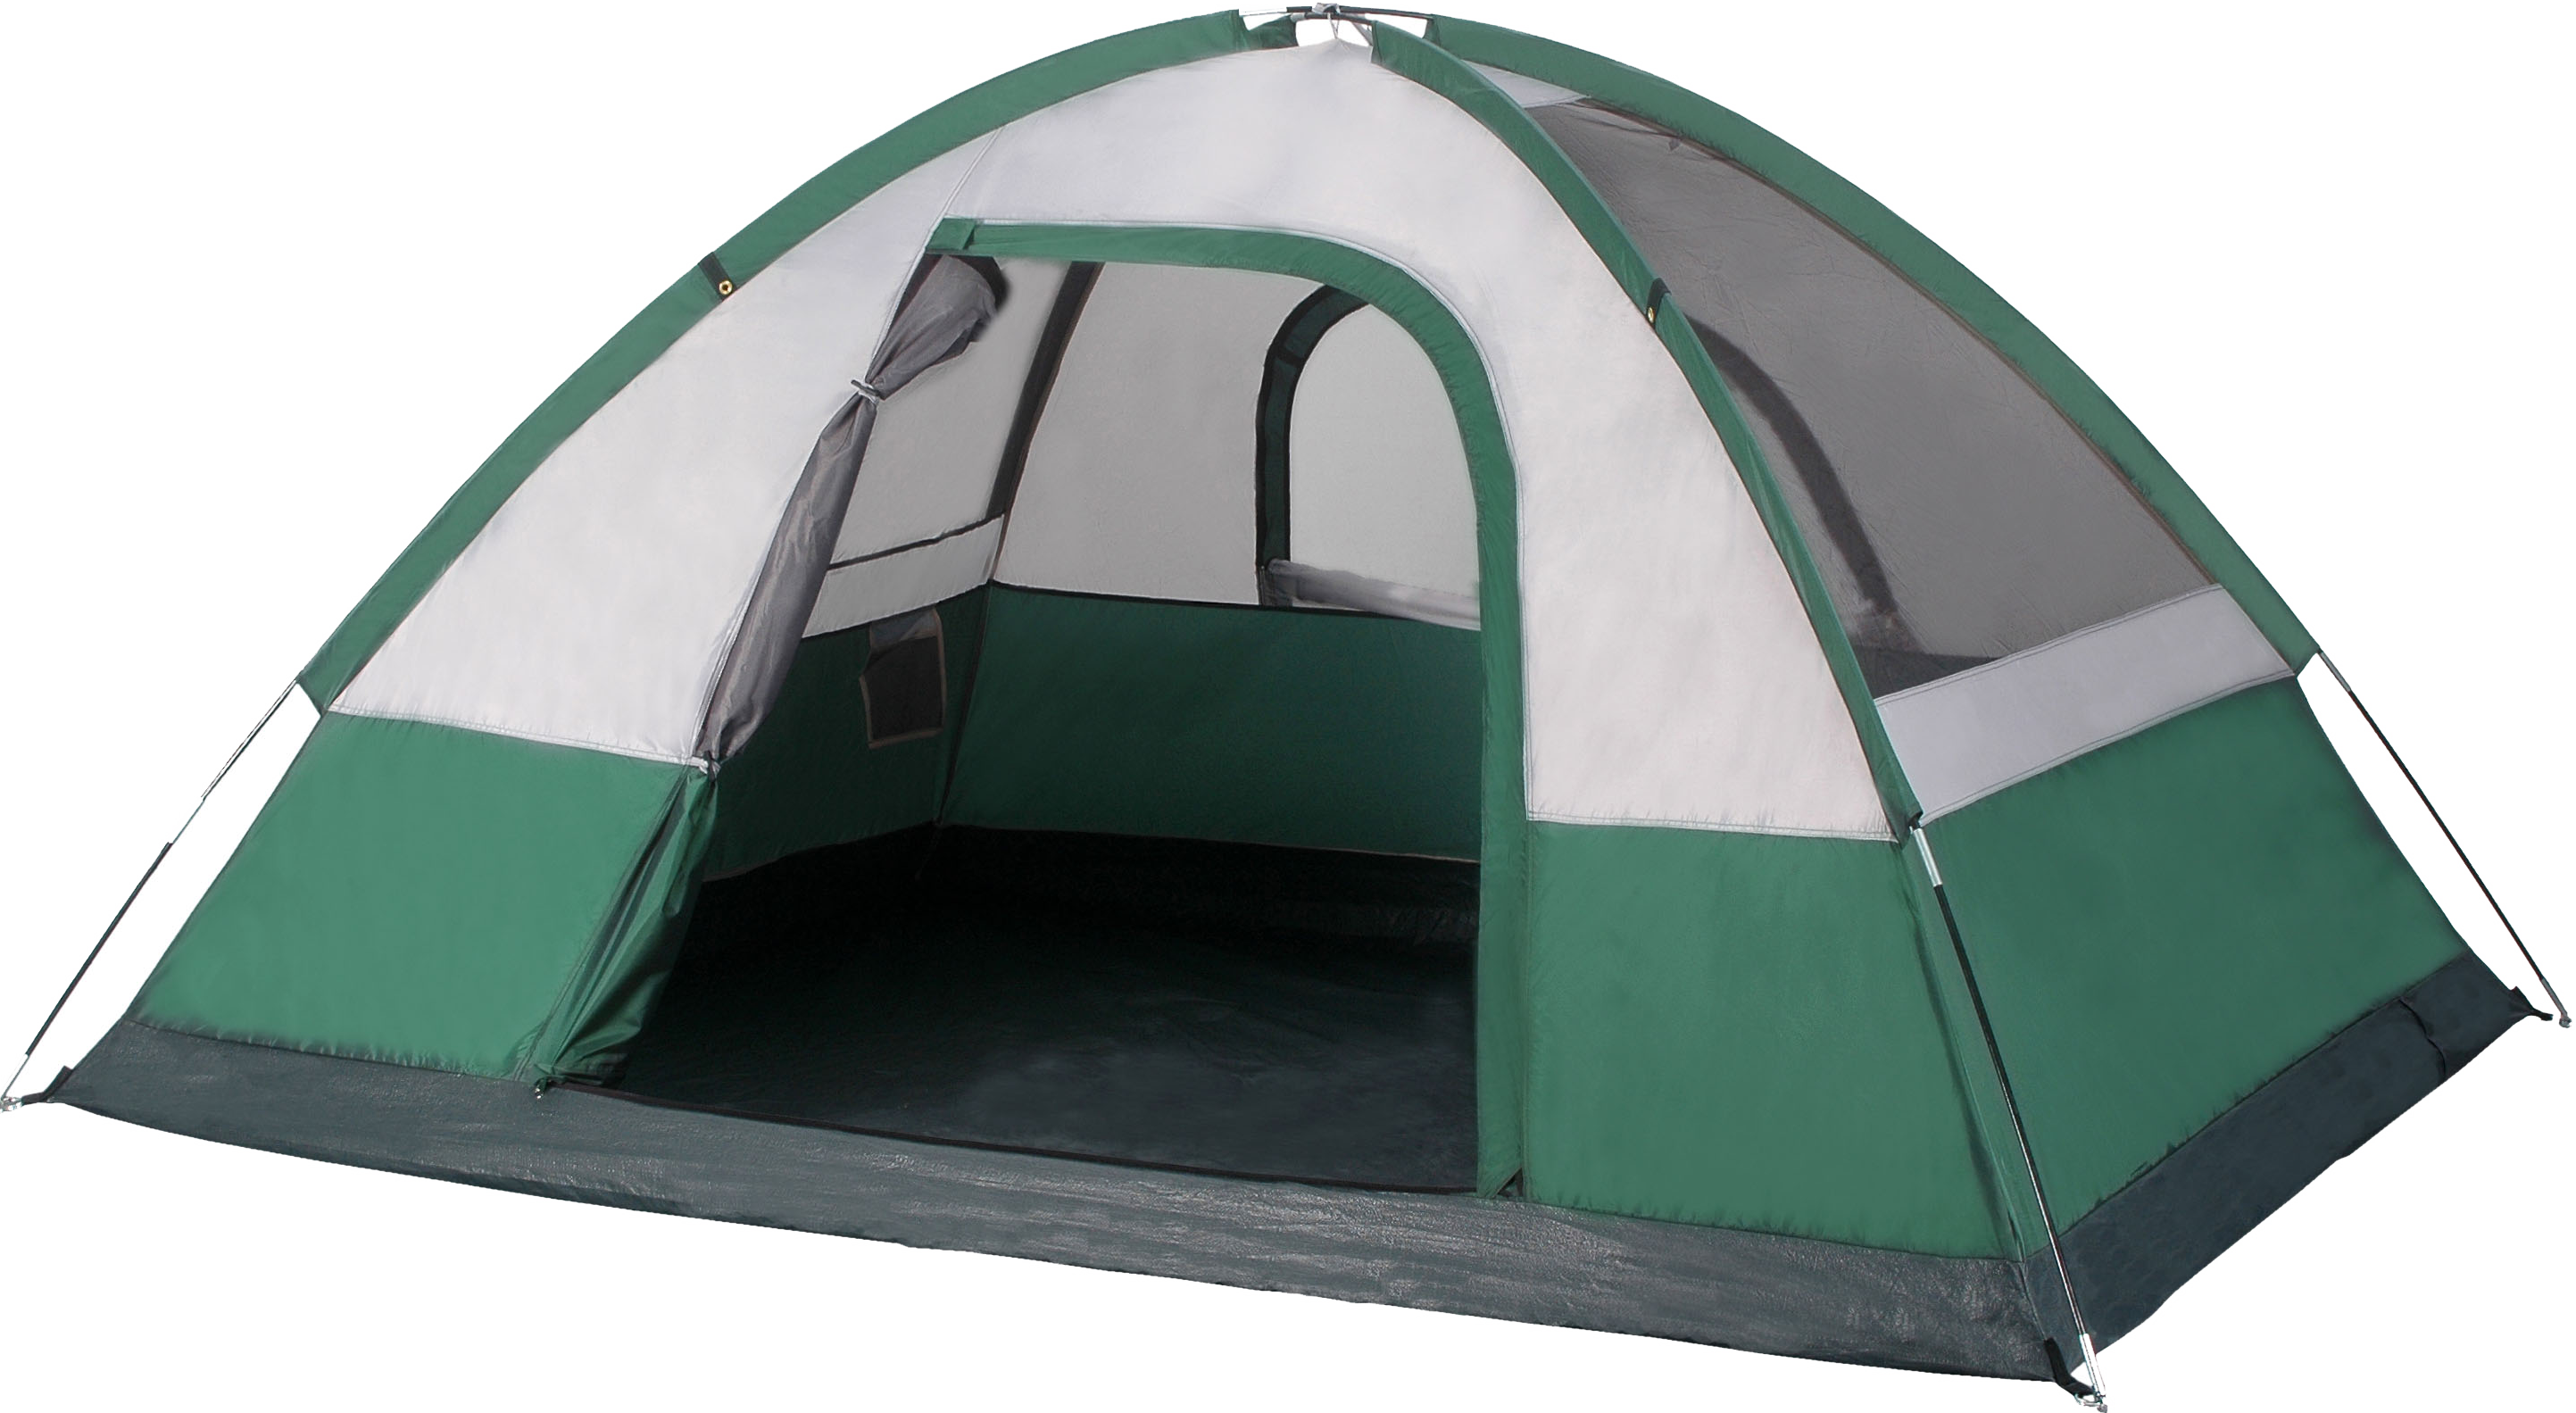 Free Download Tent download tent PNG images